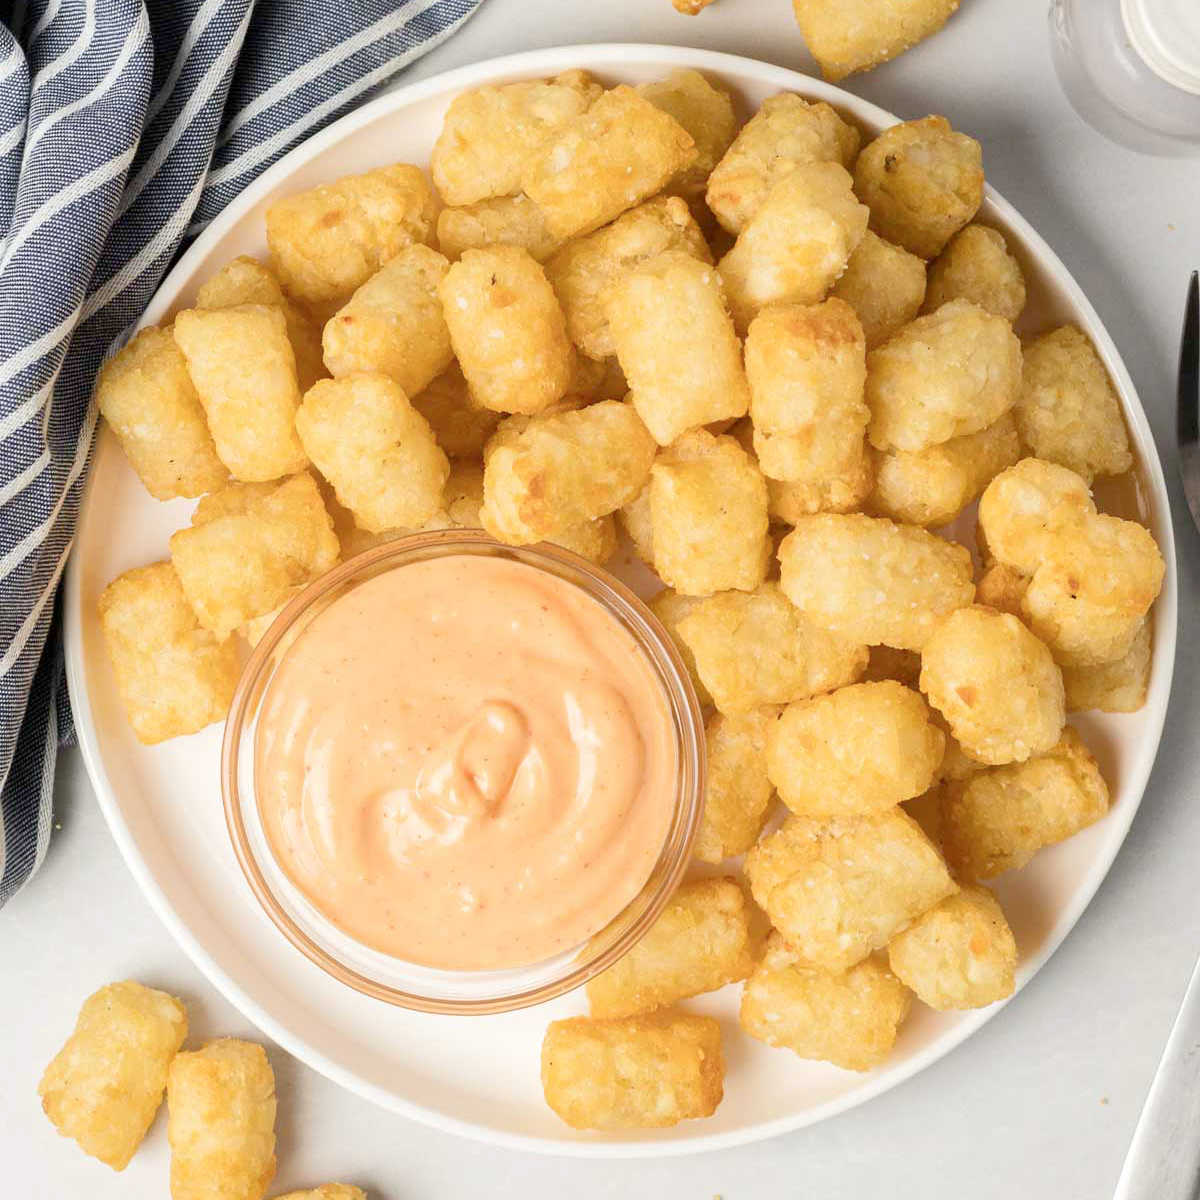 Air fried tater tots on a white plate with a small bowl of spicy mayo.